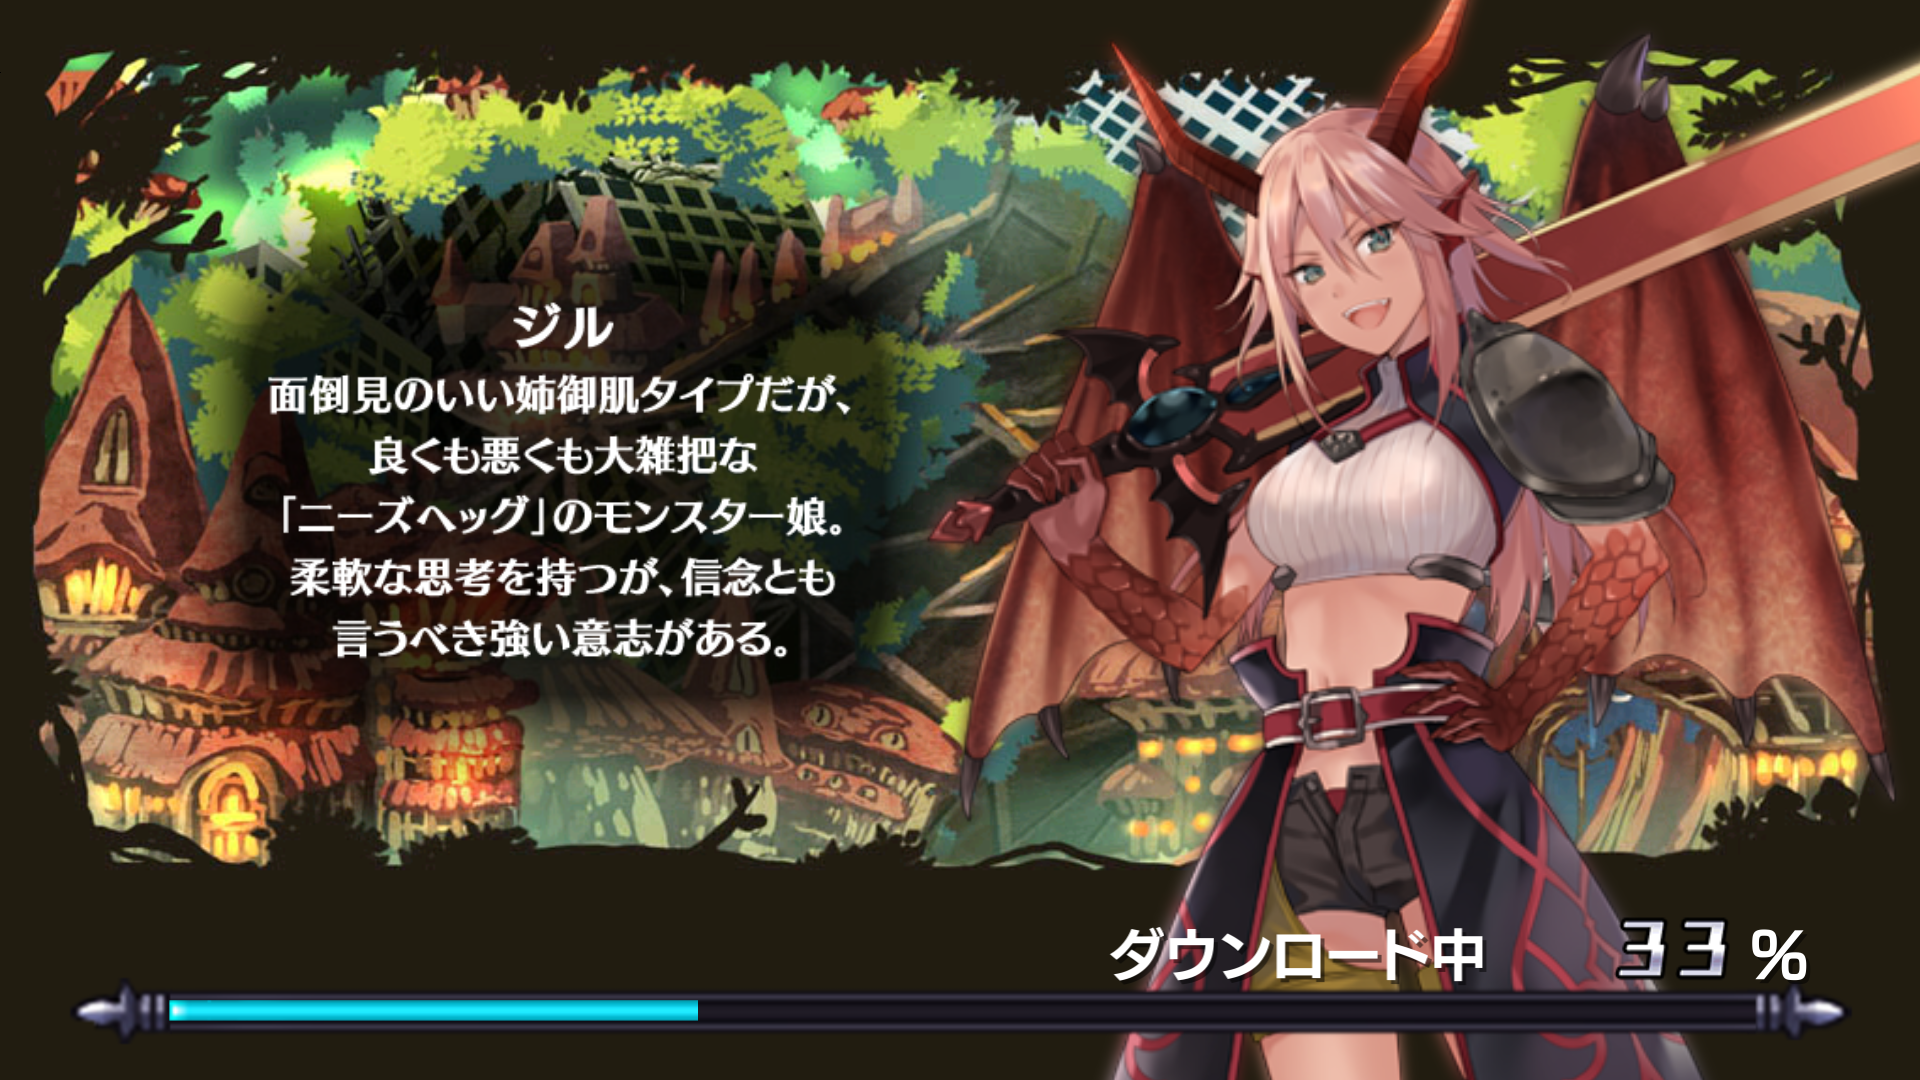 androidアプリ 限界凸騎 モンスターモンピース NAKED攻略スクリーンショット2